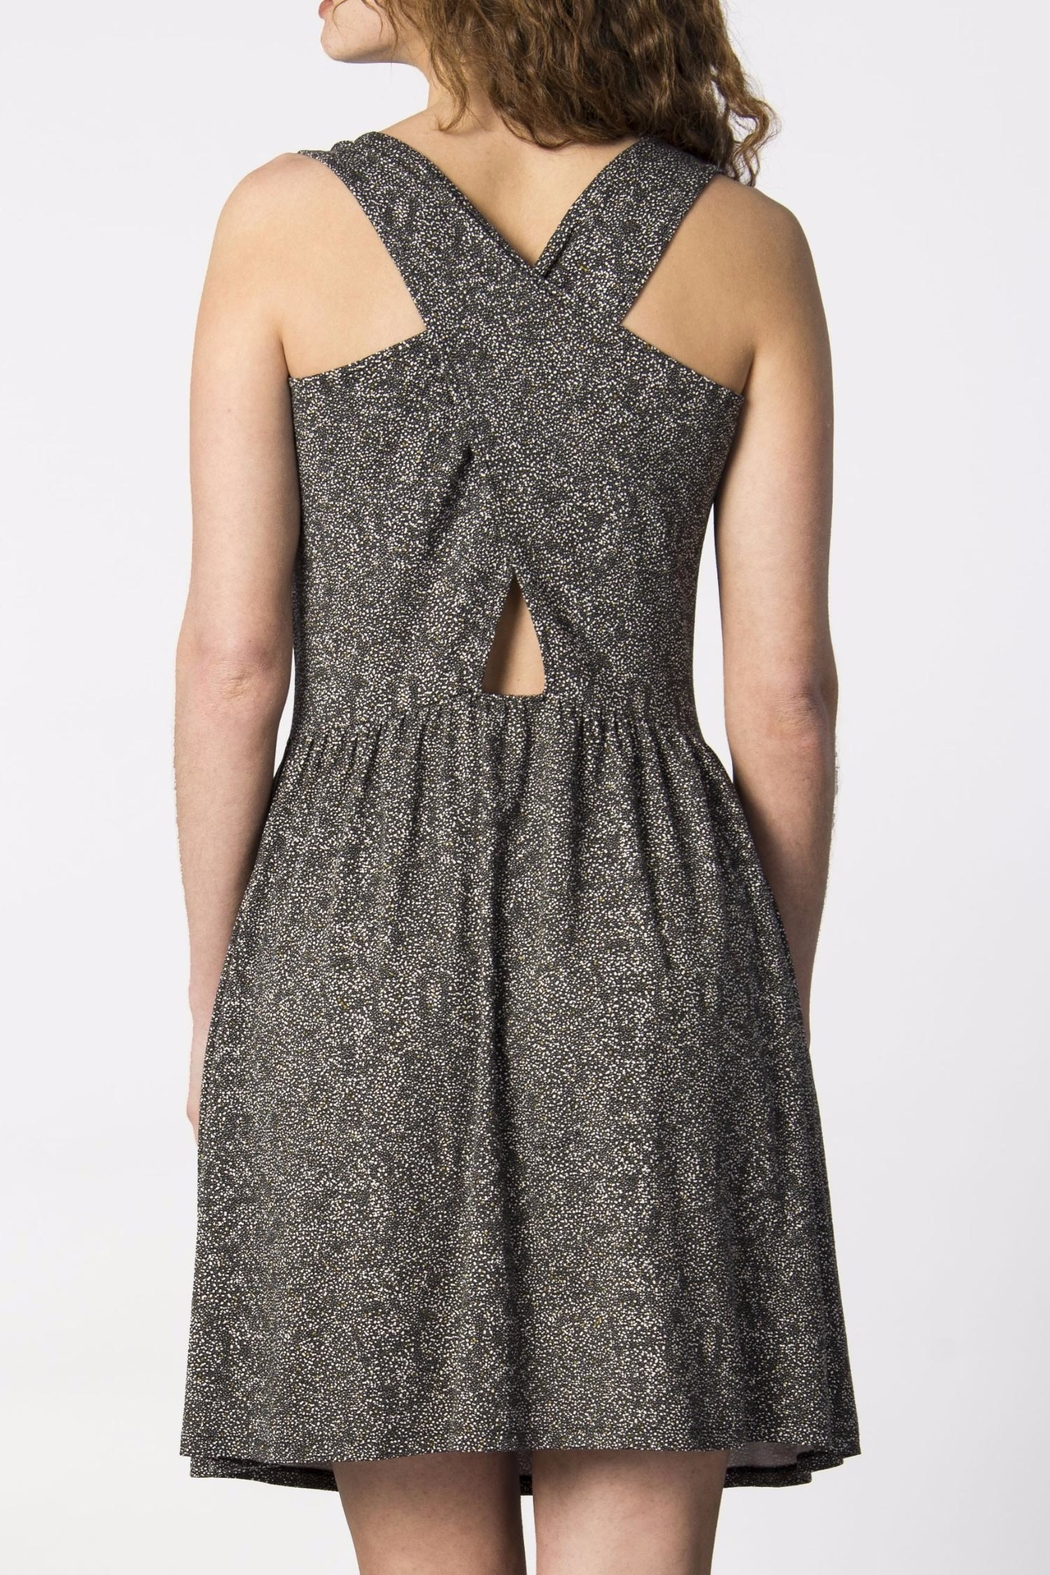 Skunkfunk Cross Back Dress - Front Full Image